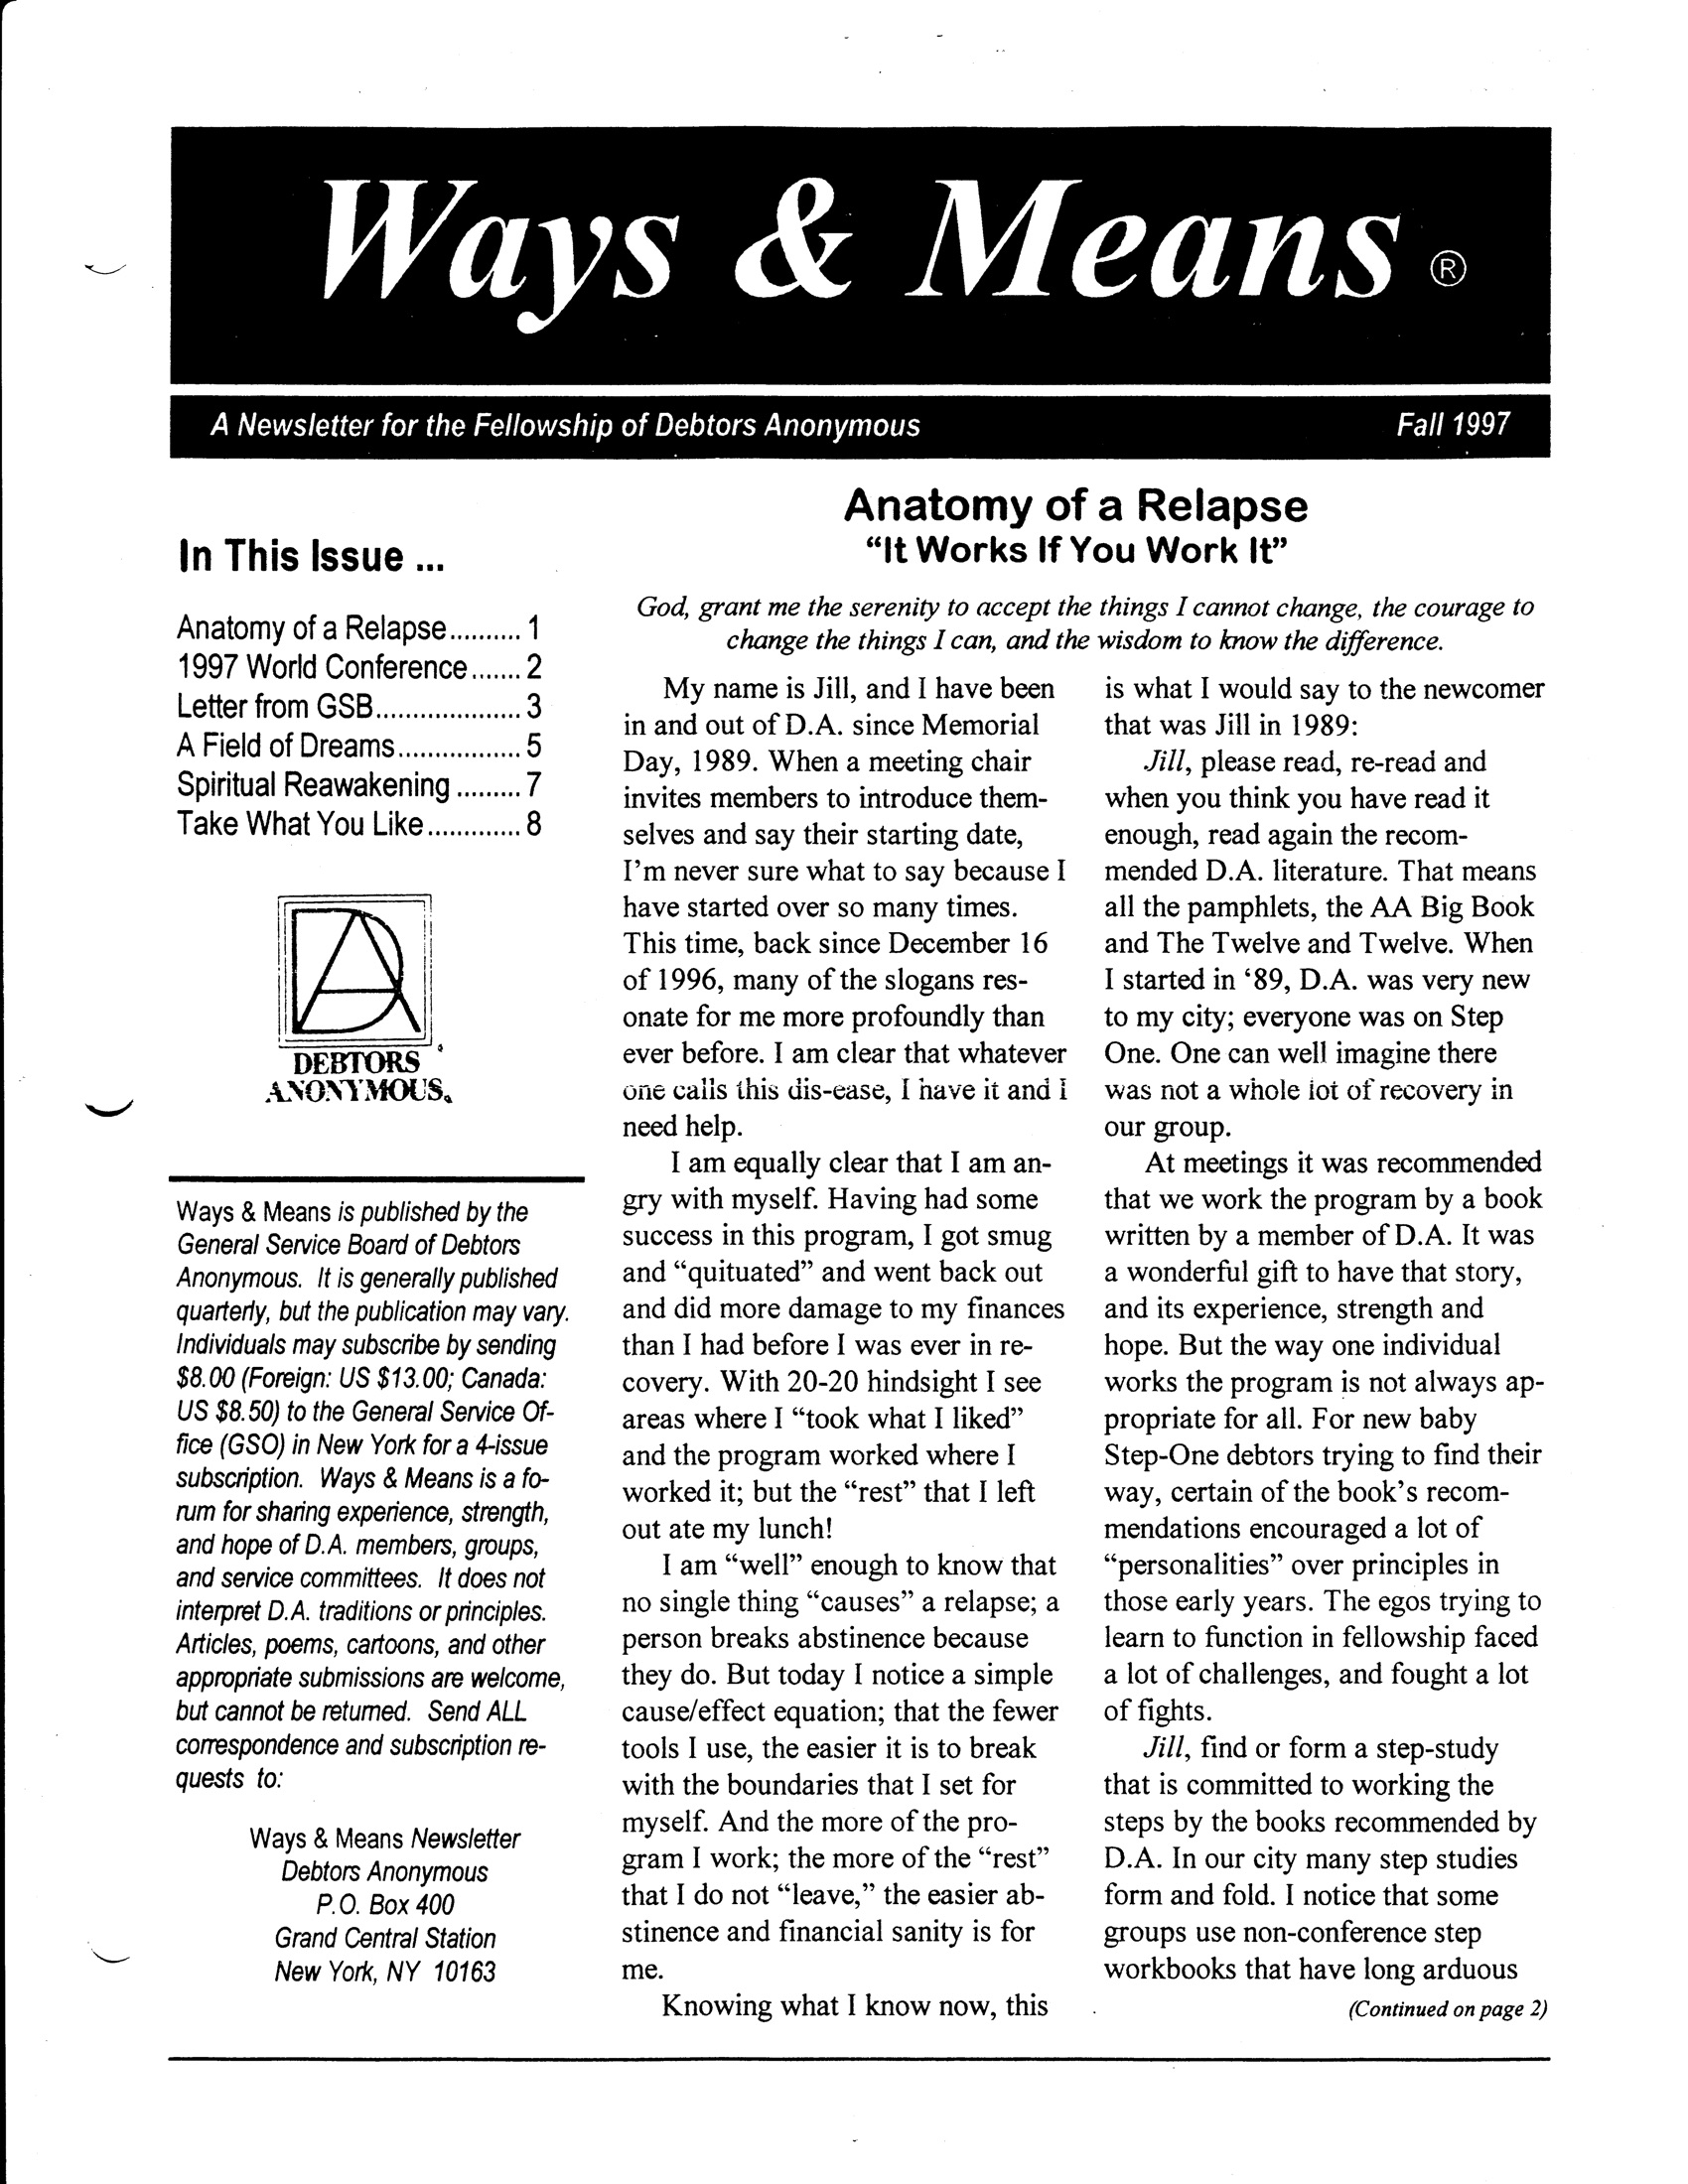 Ways & Means 4th QTR 1997